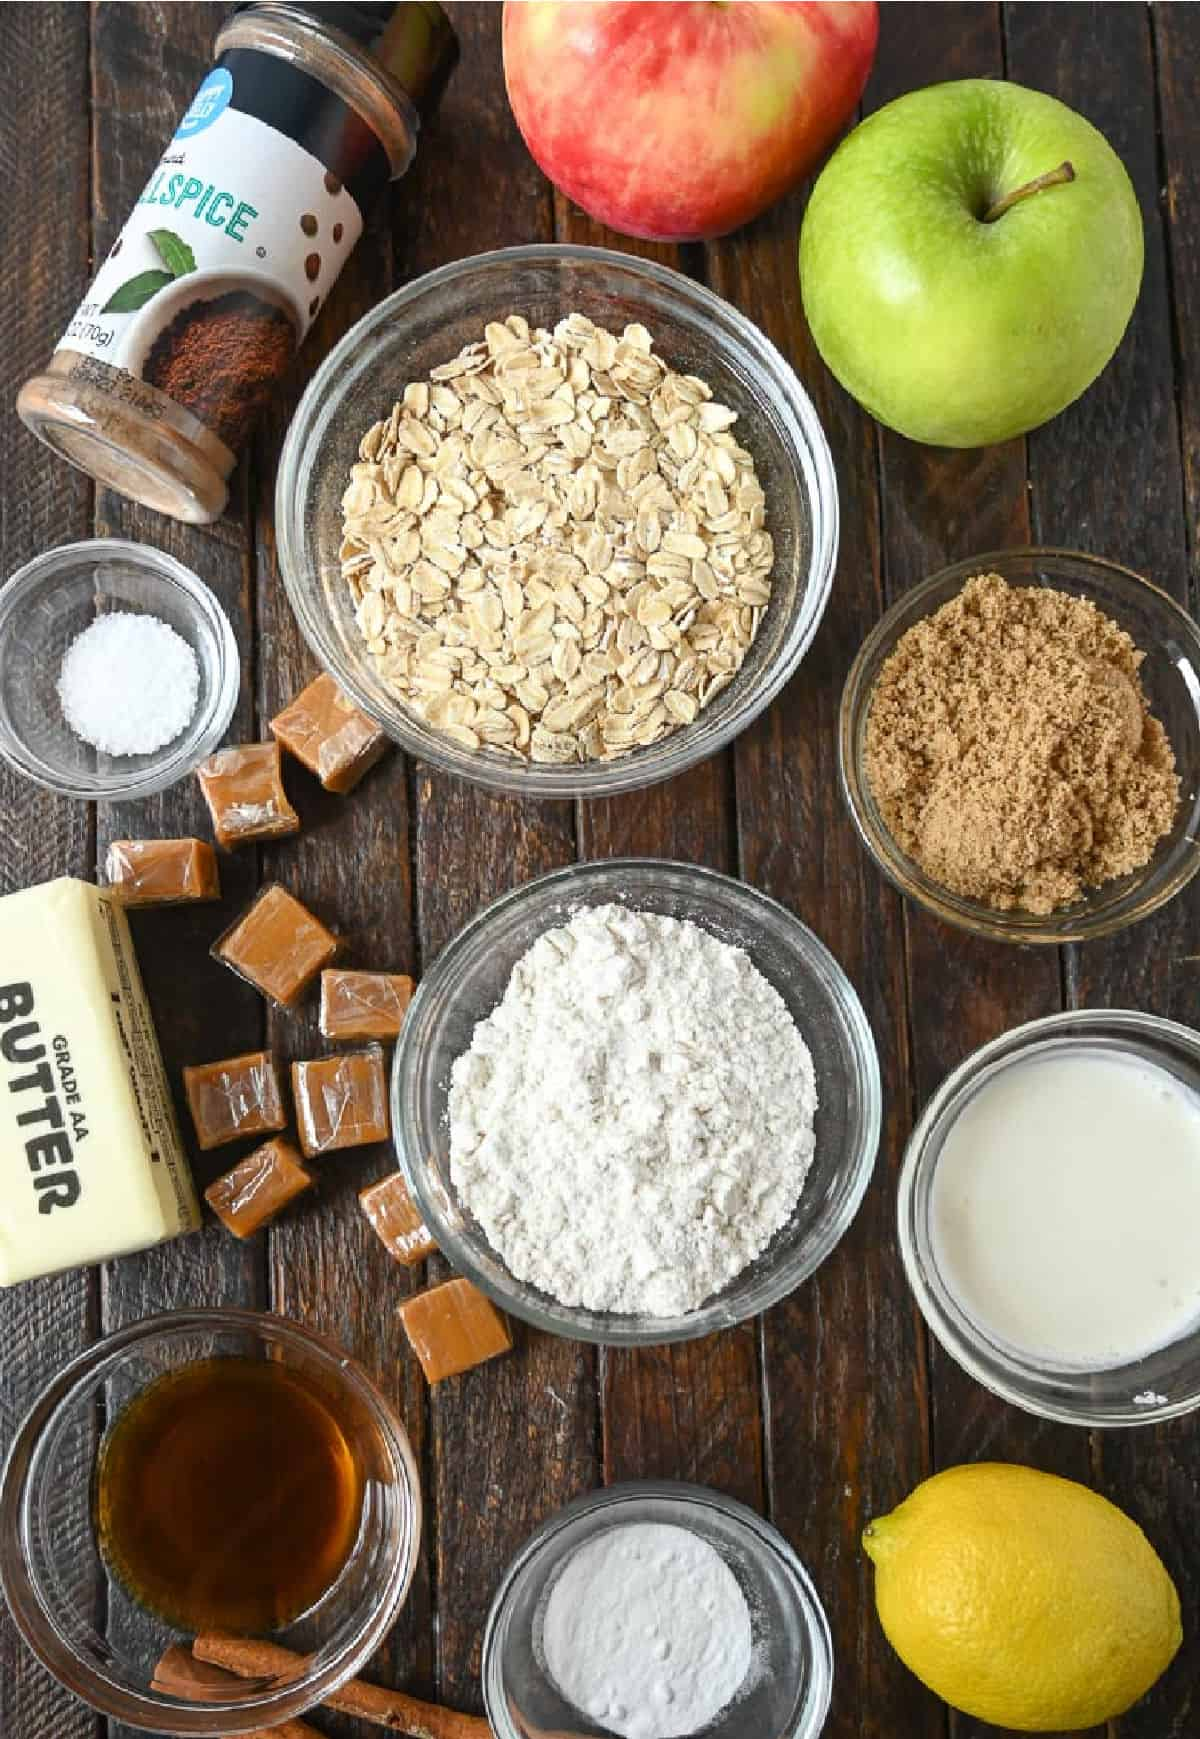 A photo of all the ingredients needed for caramel apple crumble bars.